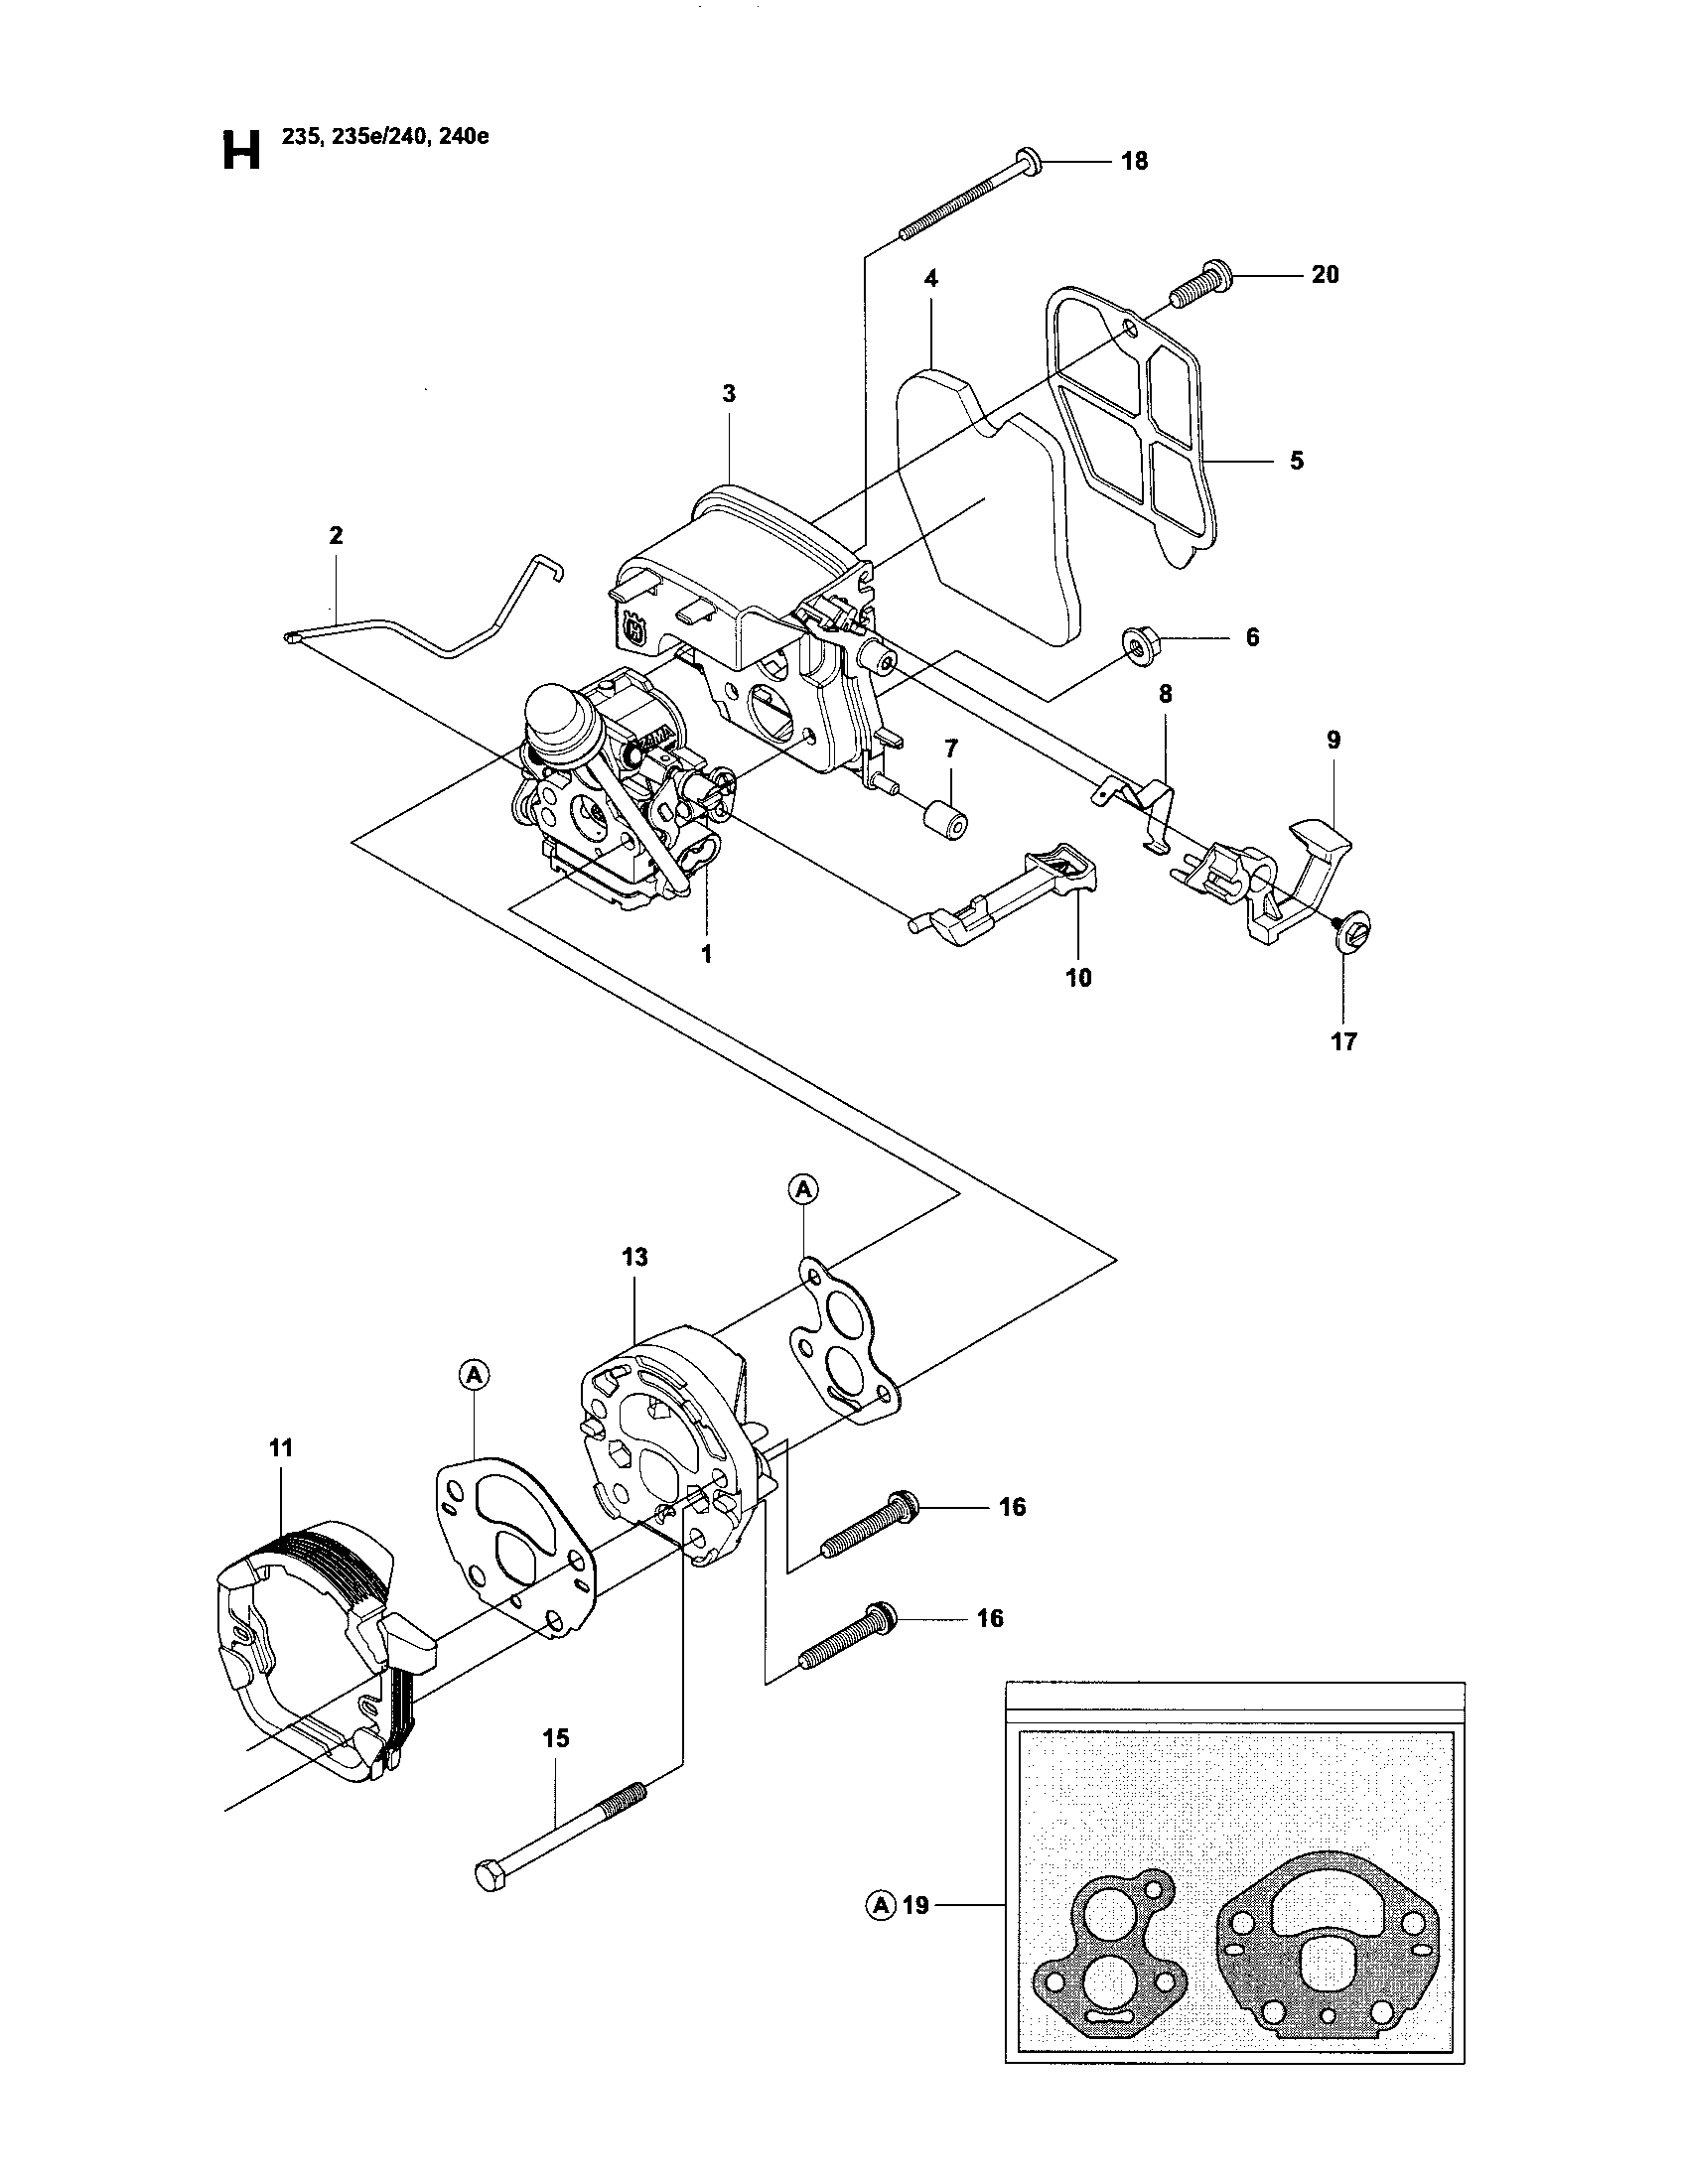 Husqvarna 240 Fuel Line Diagram, Husqvarna, Free Engine